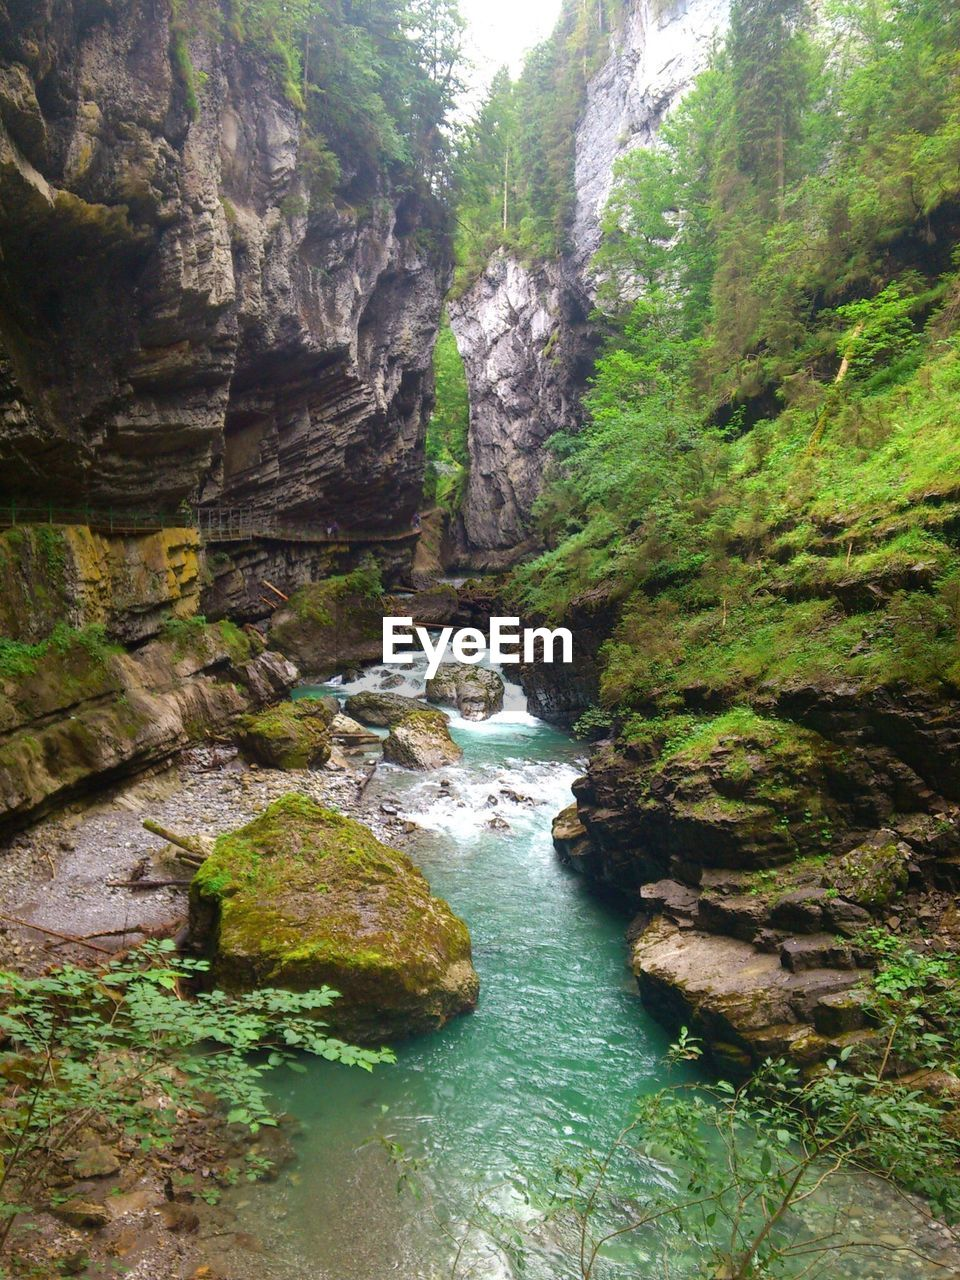 nature, scenics, forest, beauty in nature, rock - object, no people, tranquil scene, tranquility, tree, water, waterfall, day, river, outdoors, physical geography